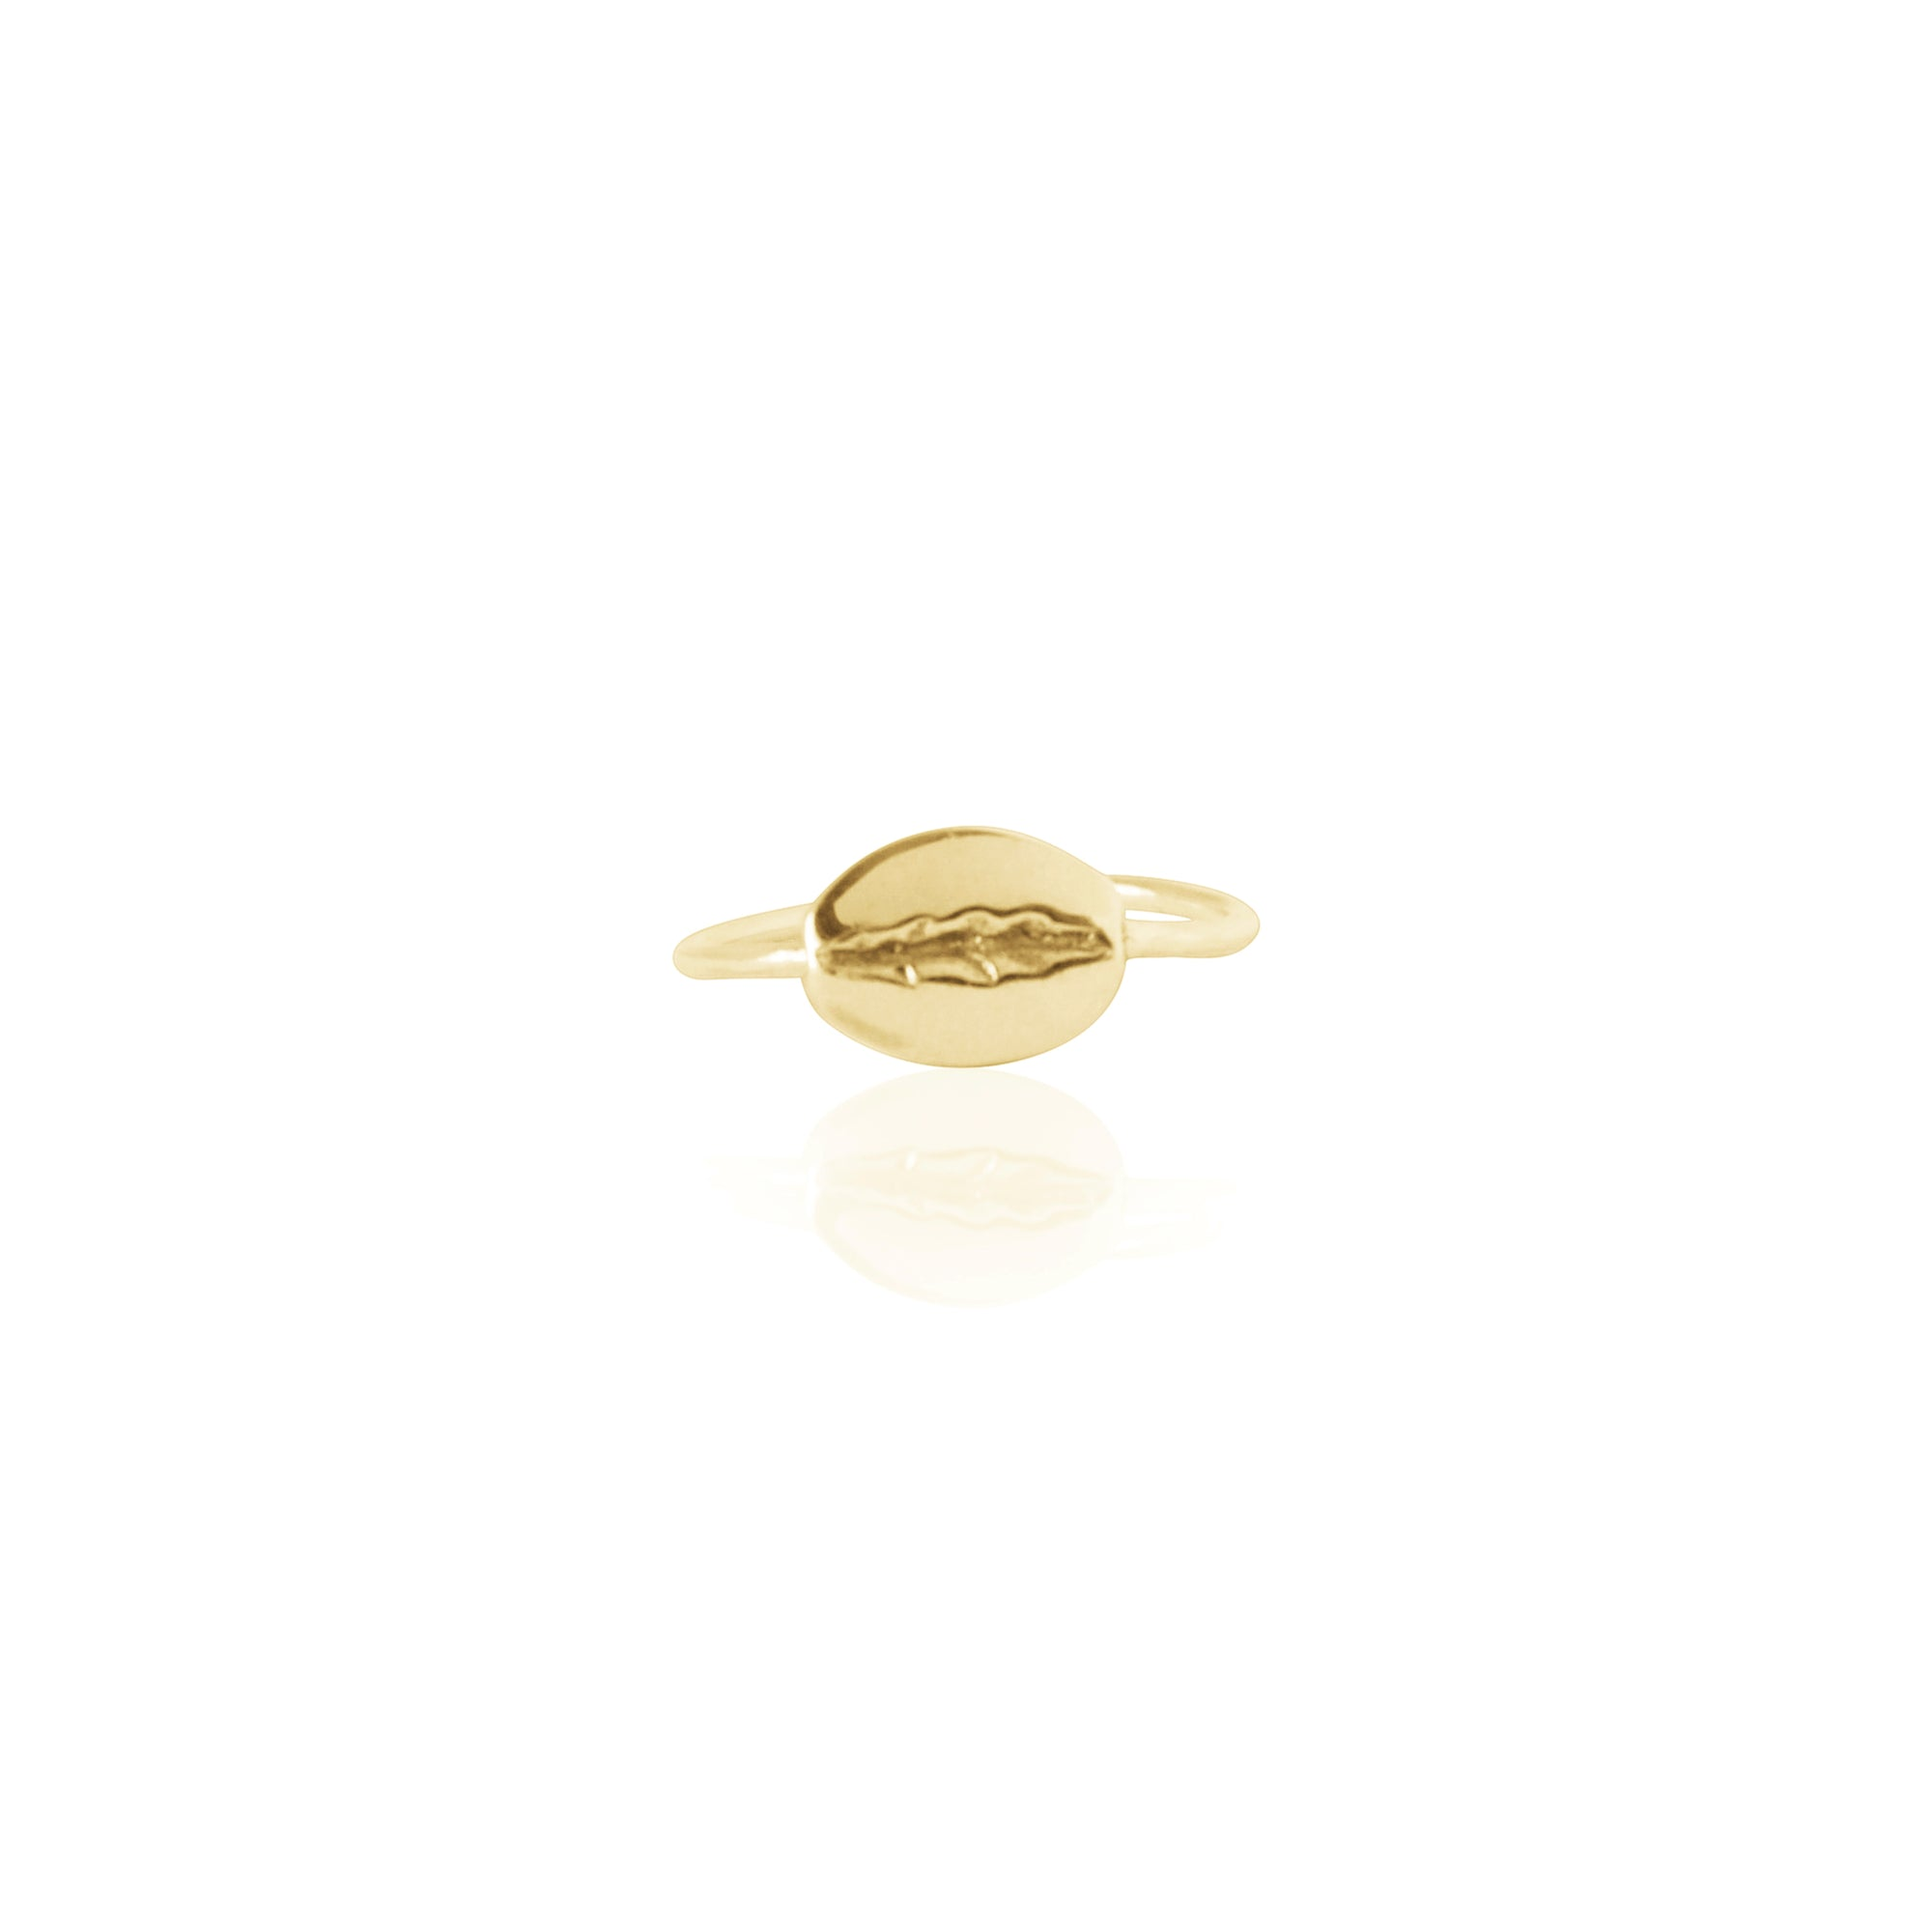 Coconut and Bliss x La Luna Rose Kintamani Ring - GOLD